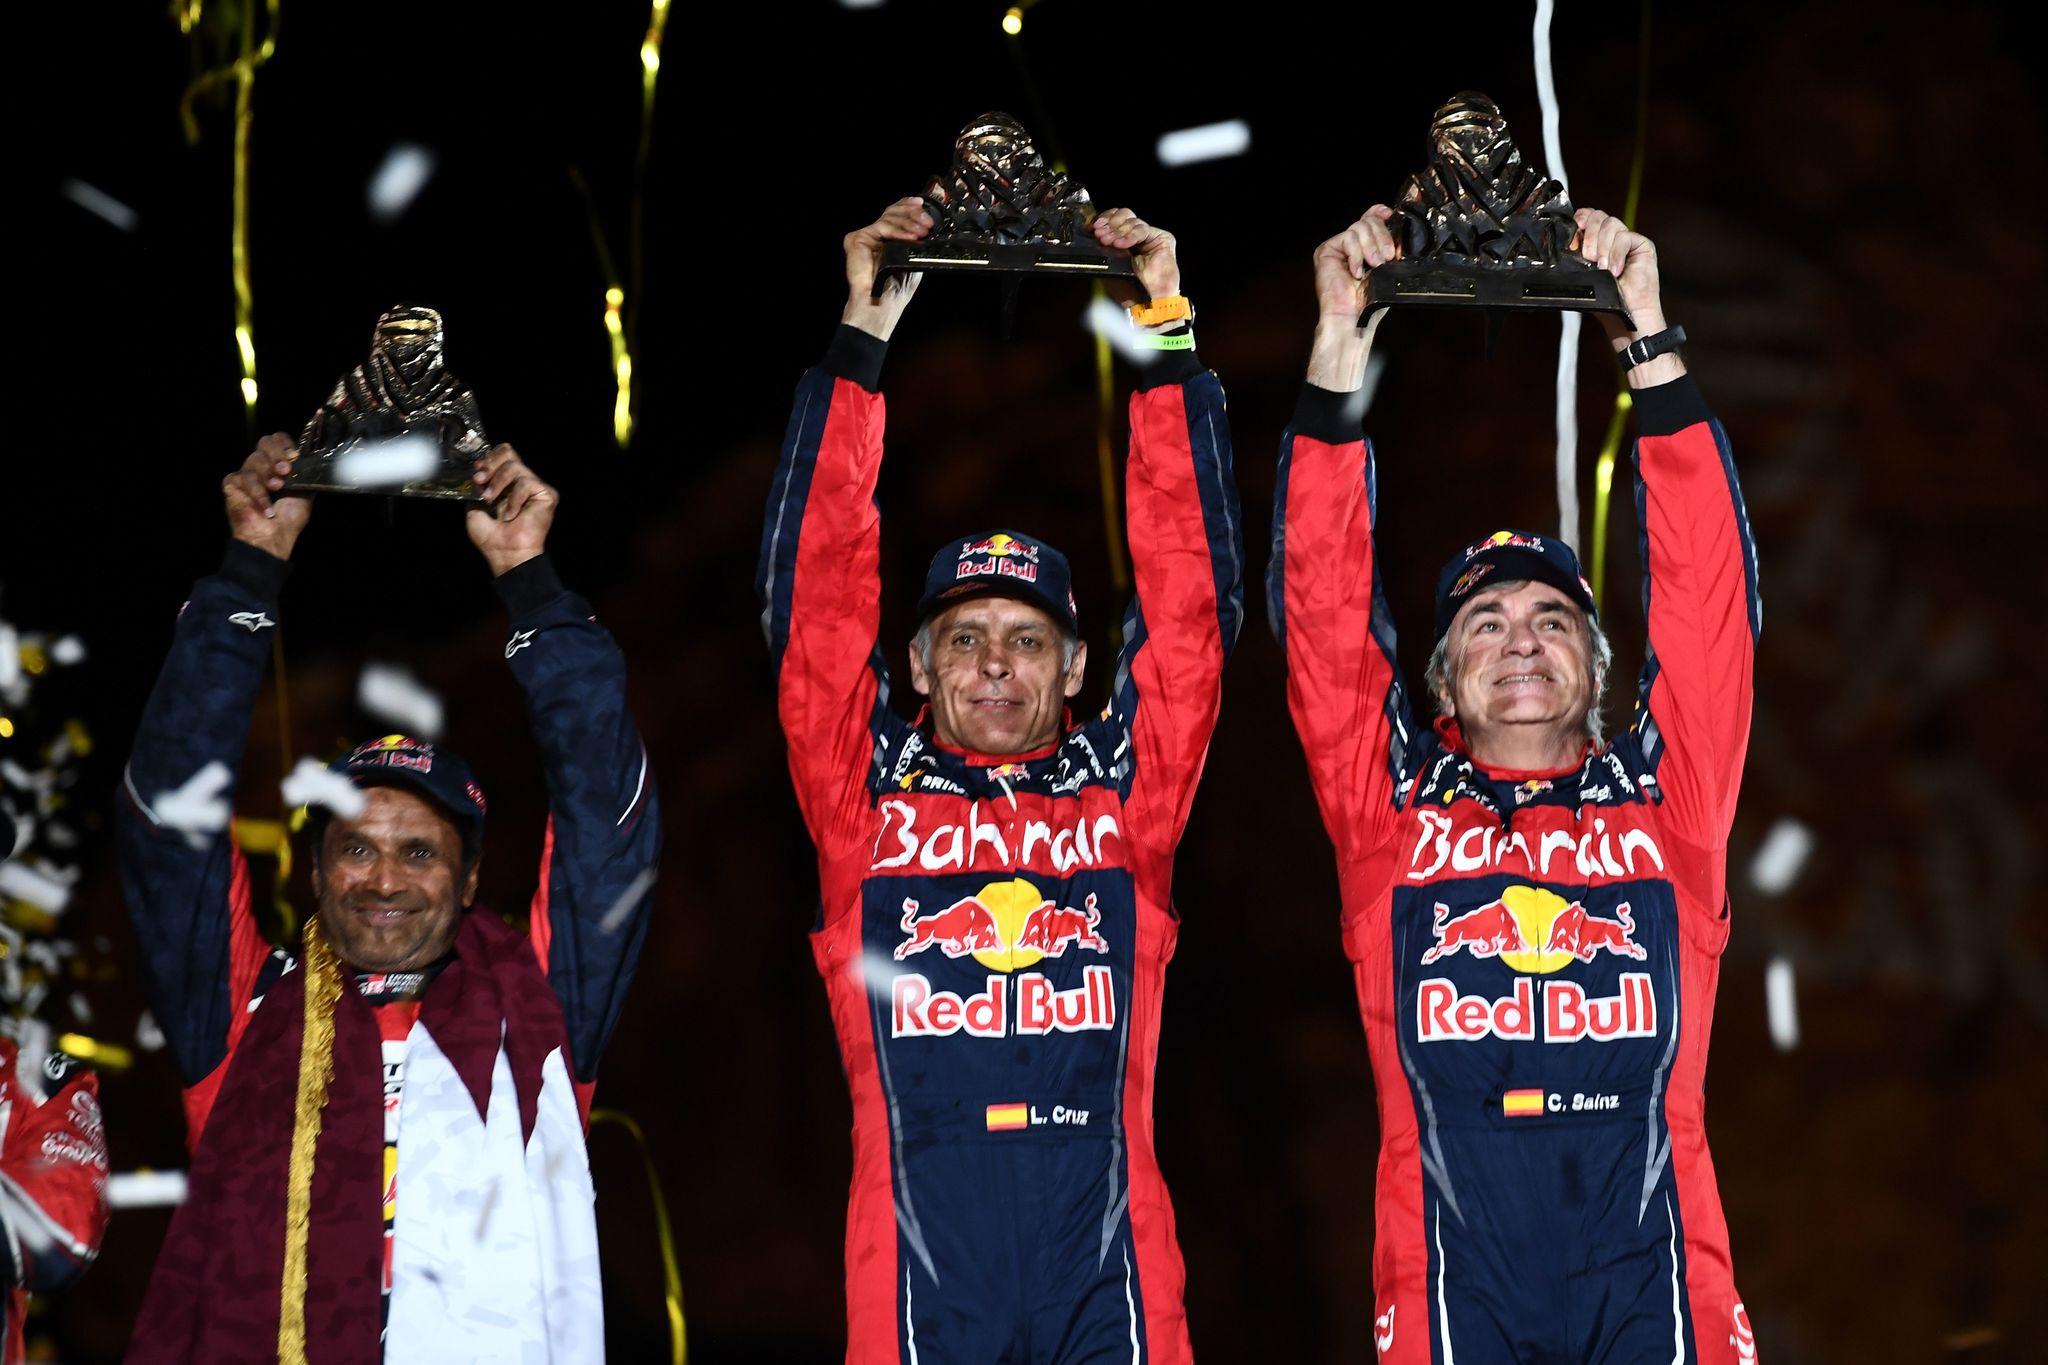 (From L) Qatars car driver Nasser al-Attiyah (placed second), Spanish Lucas Cruz and Carlos <HIT>Sainz</HIT> (first) celebrate on the finishing podium of the Dakar 2020 in Qiddiya on January 17, 2020 after the 12th and final stage between Haradh and Qiddiya. (Photo by FRANCK FIFE / AFP)